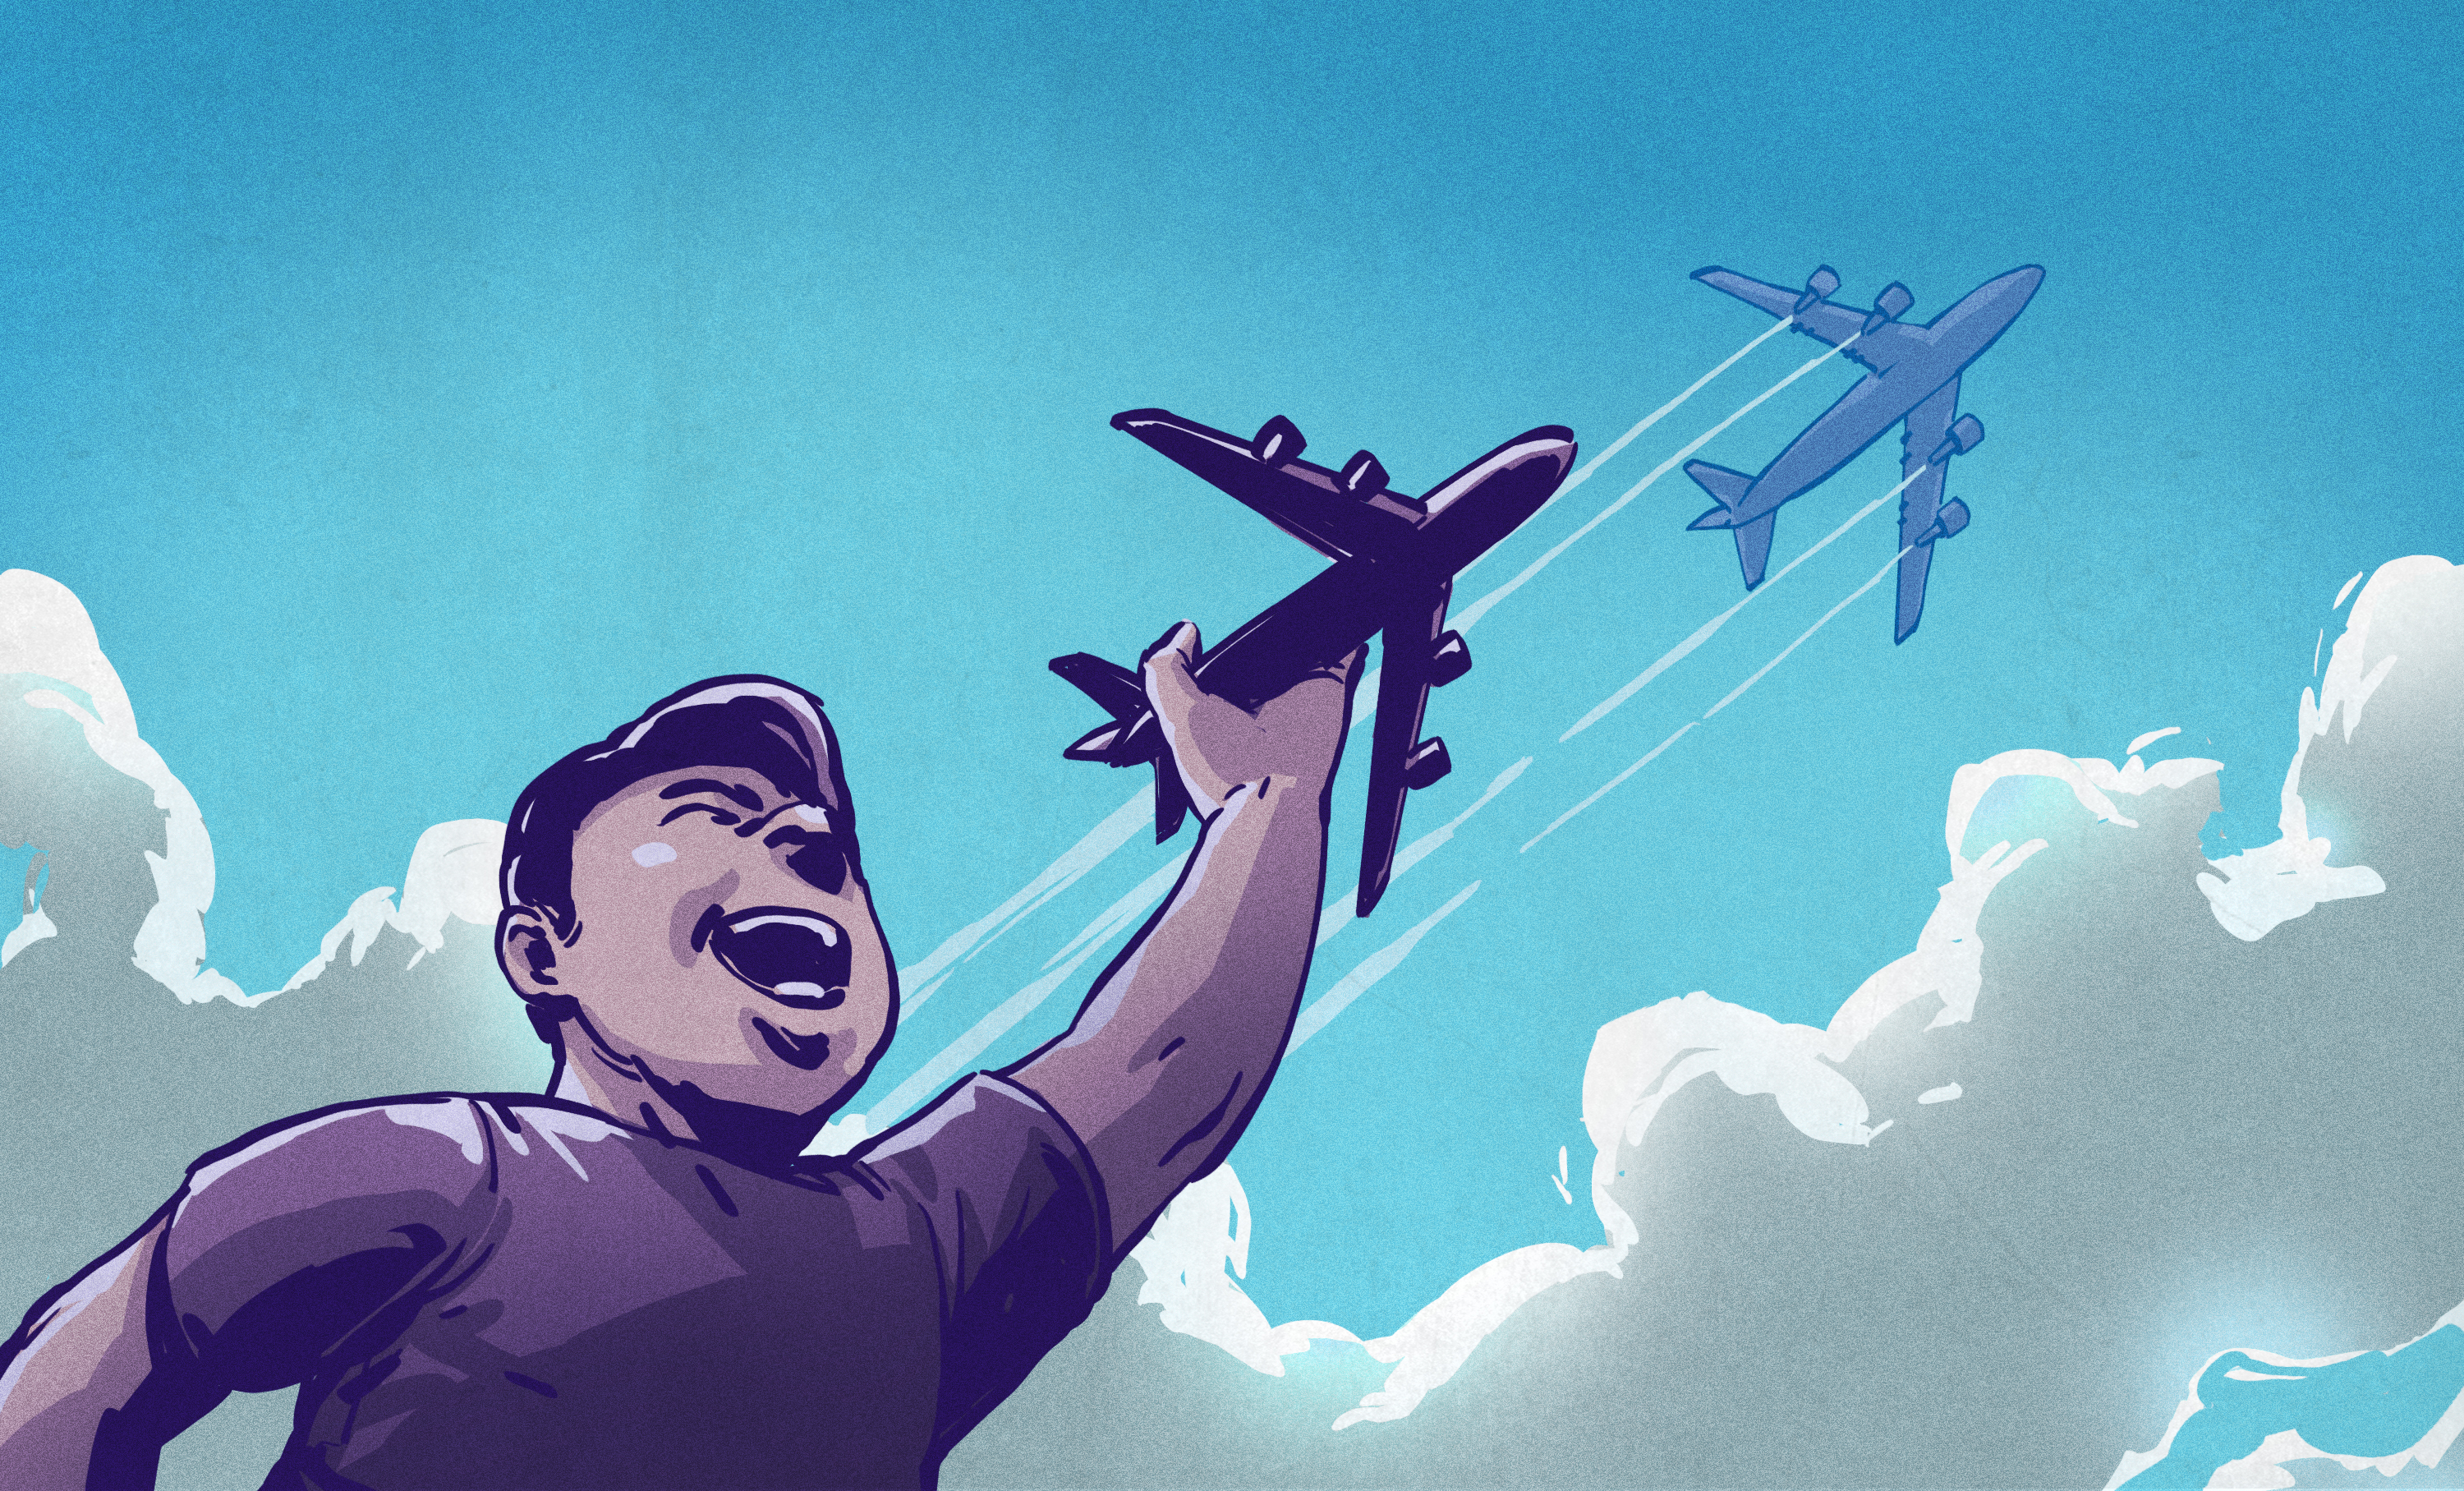 Will Drones And Planes Be Treated As Equals By FAA? | Hackaday